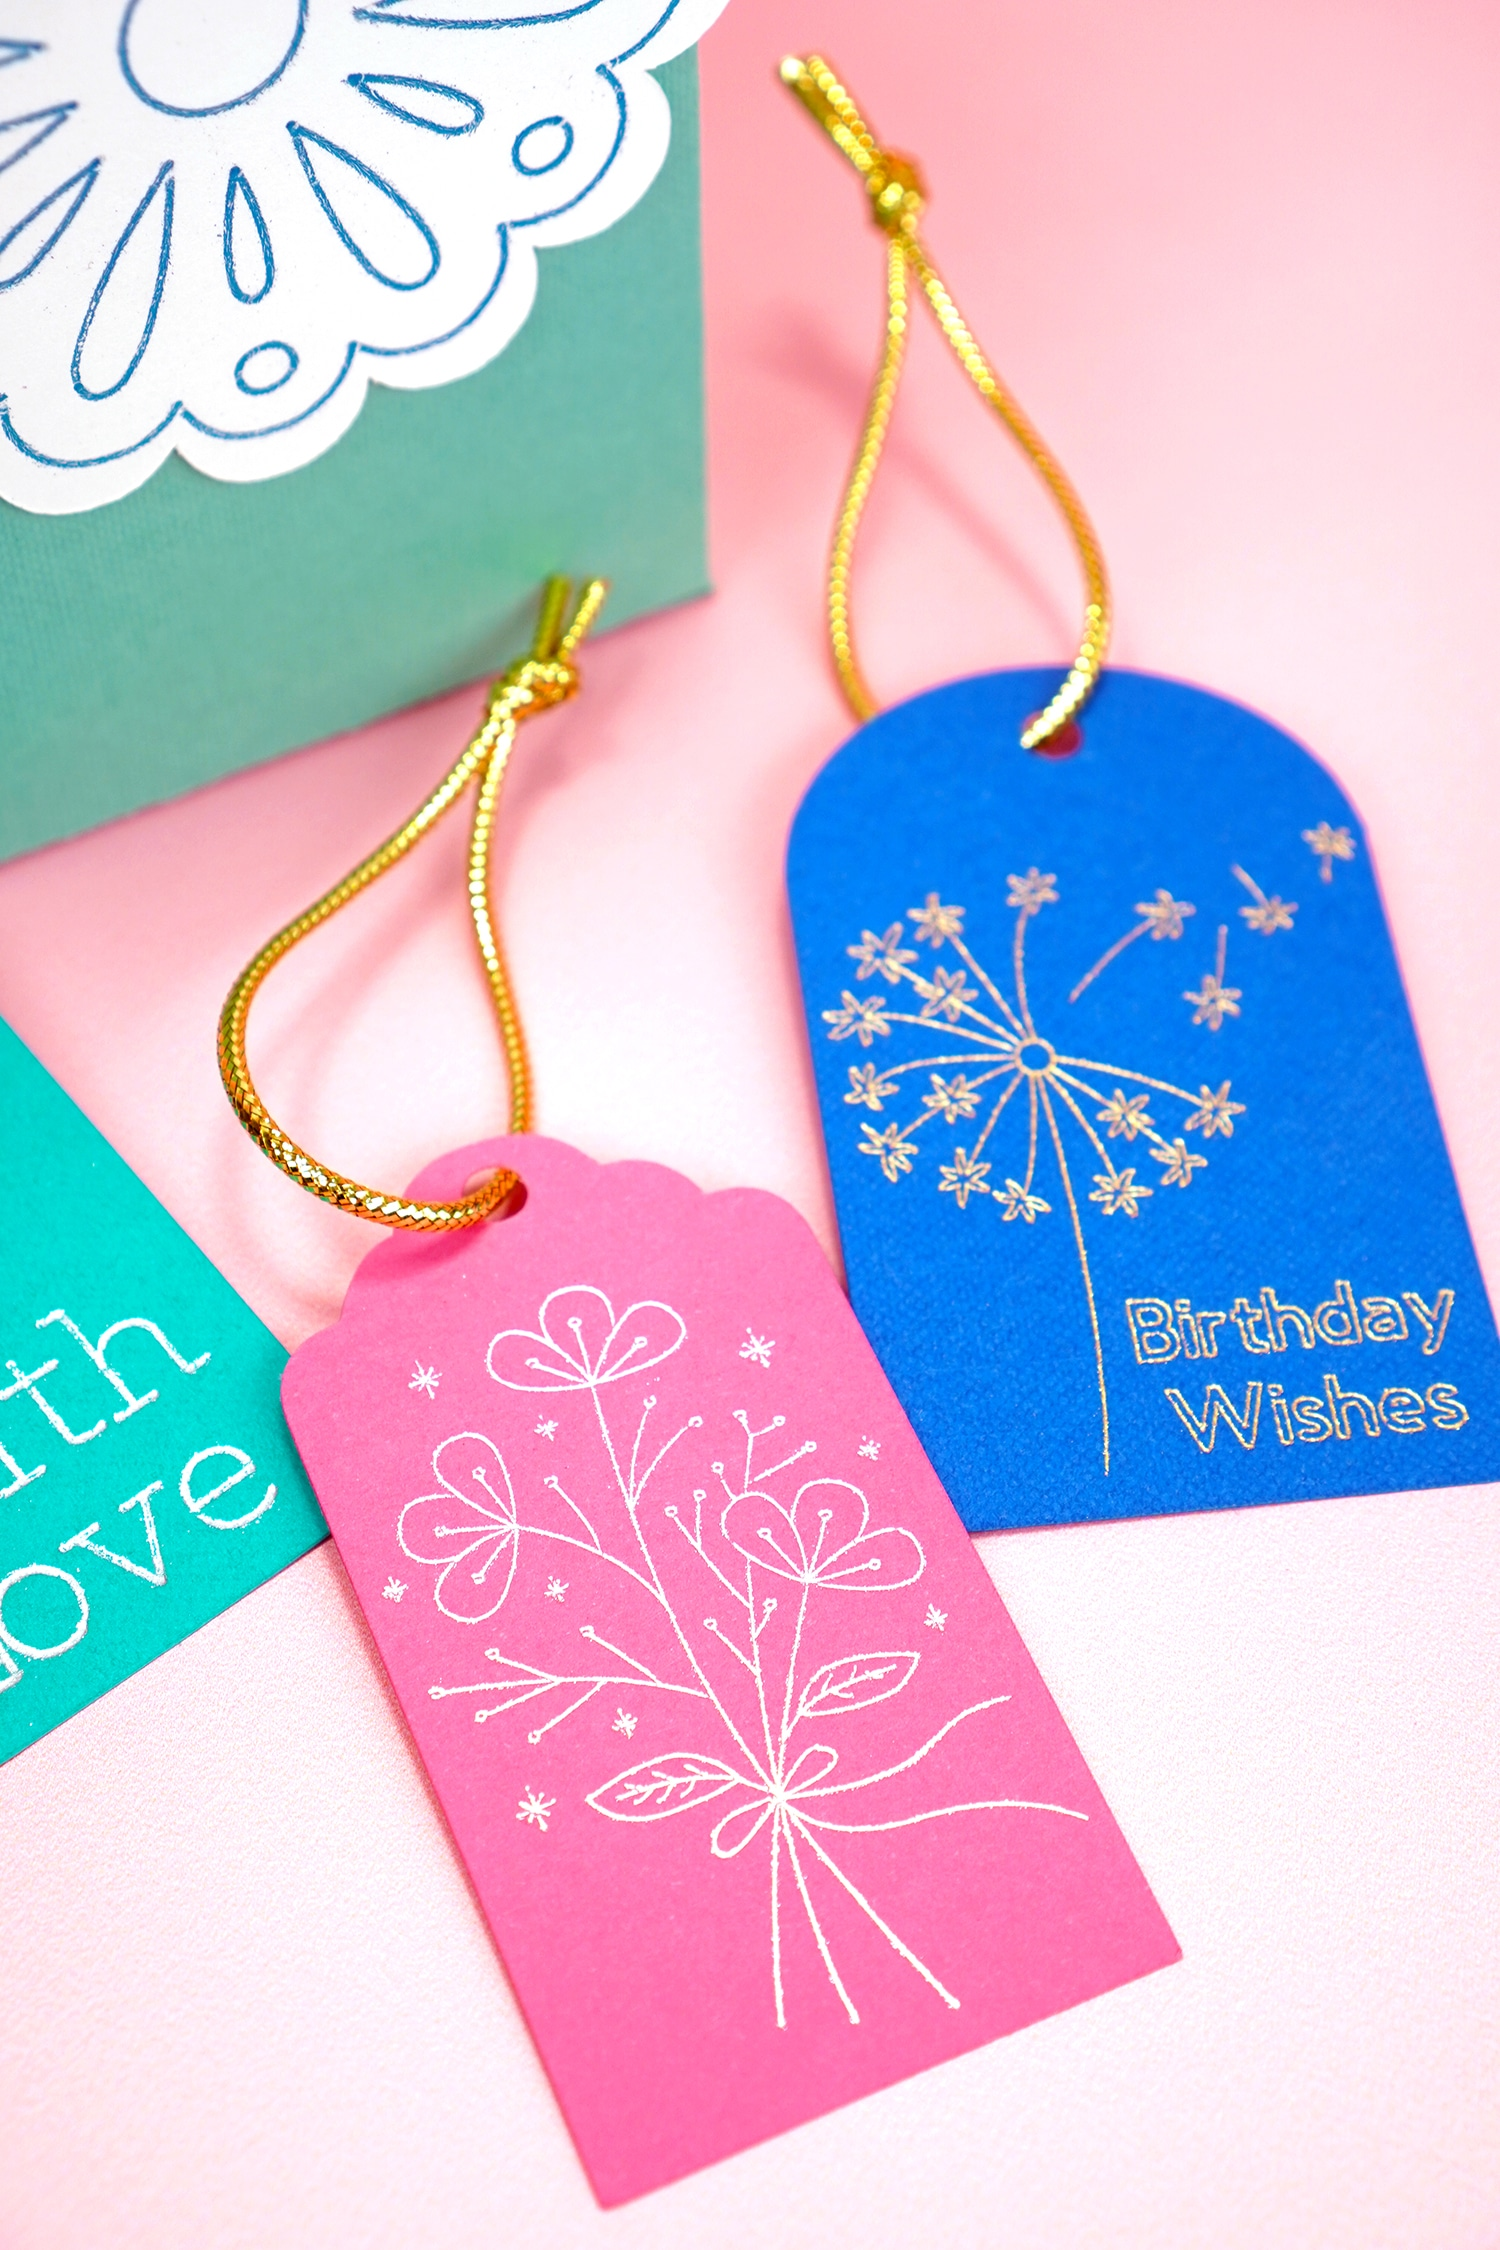 pink and blue foil embellished gift tags on coral background